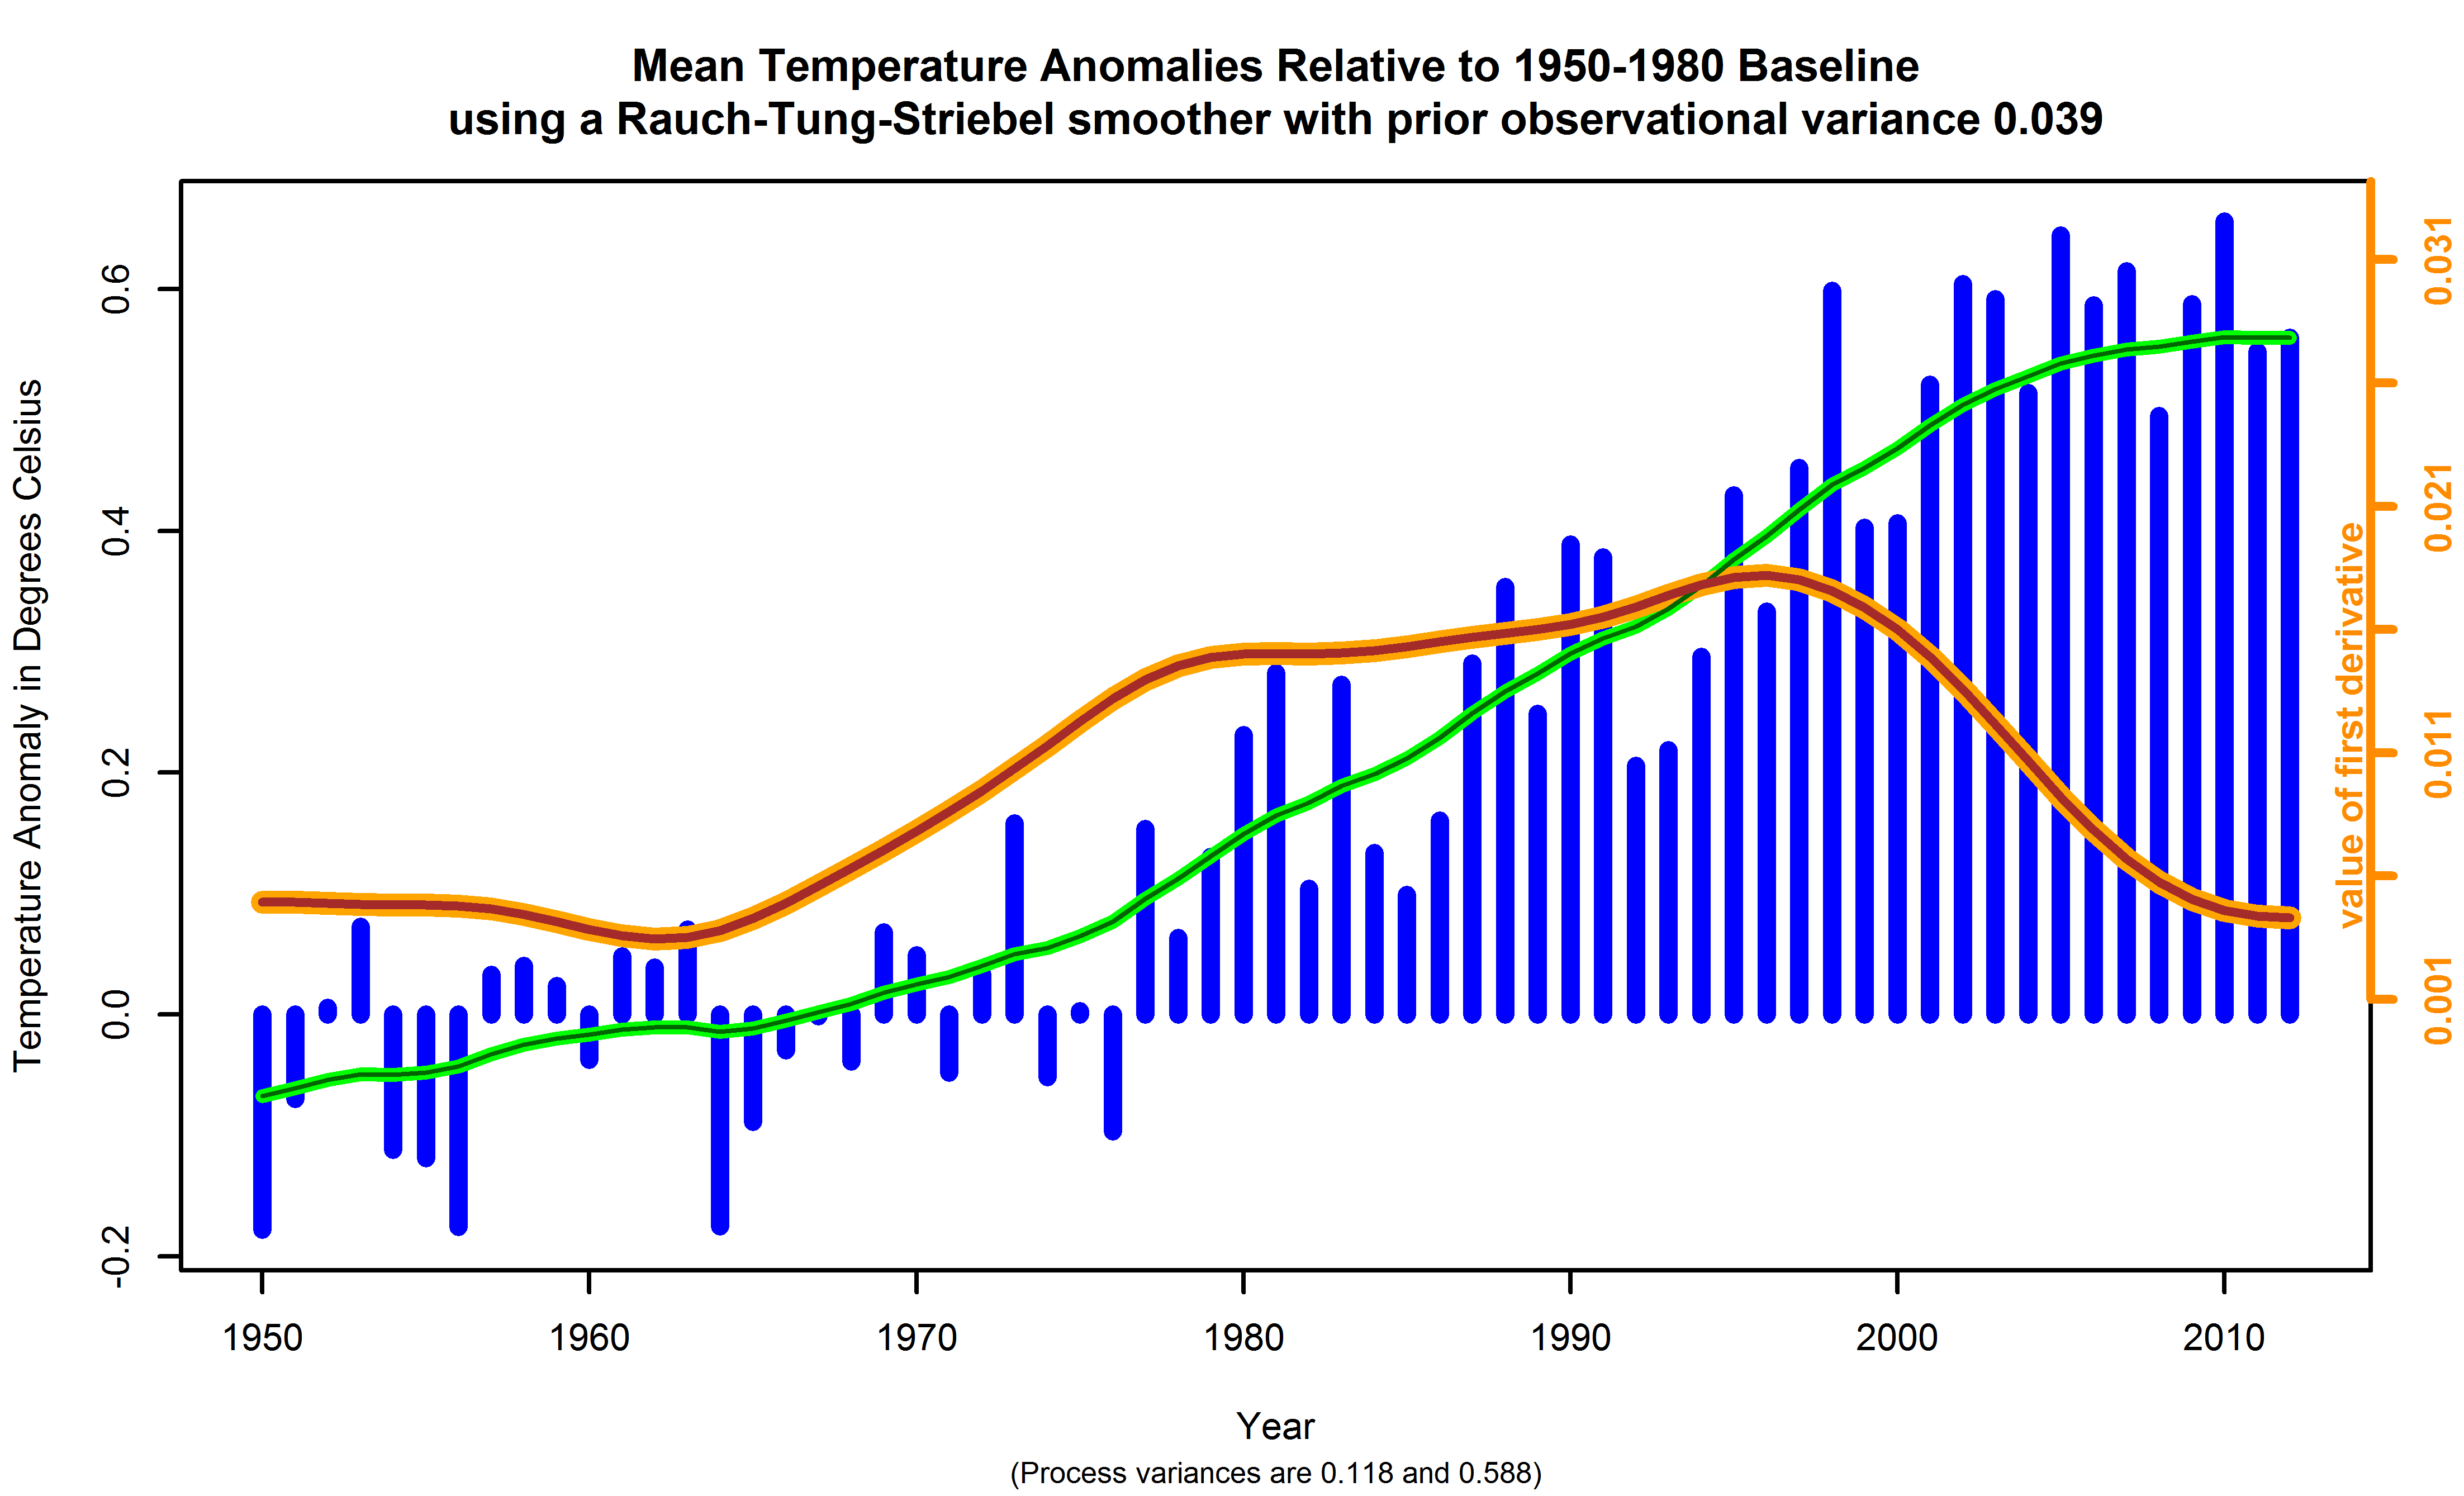 Global surface temperature anomalies relative to a 1950-1980 baseline, with fits using the Rauch-Tung-Striebel smoother placed atop.